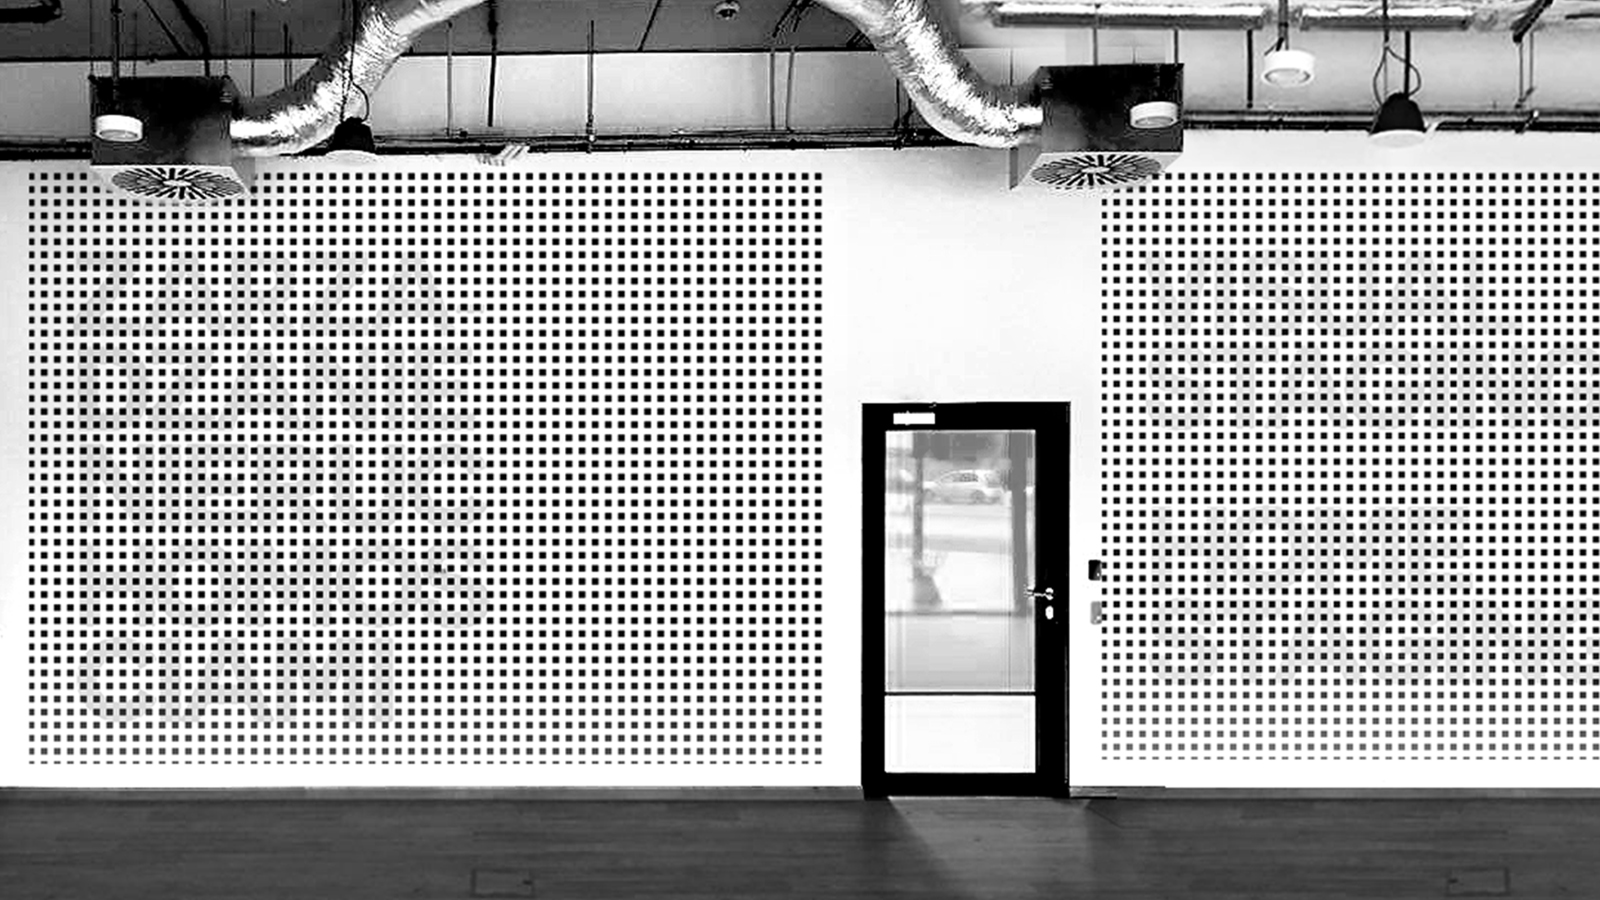 The optical art wall design proposal for the new office visible only for the pedestrians